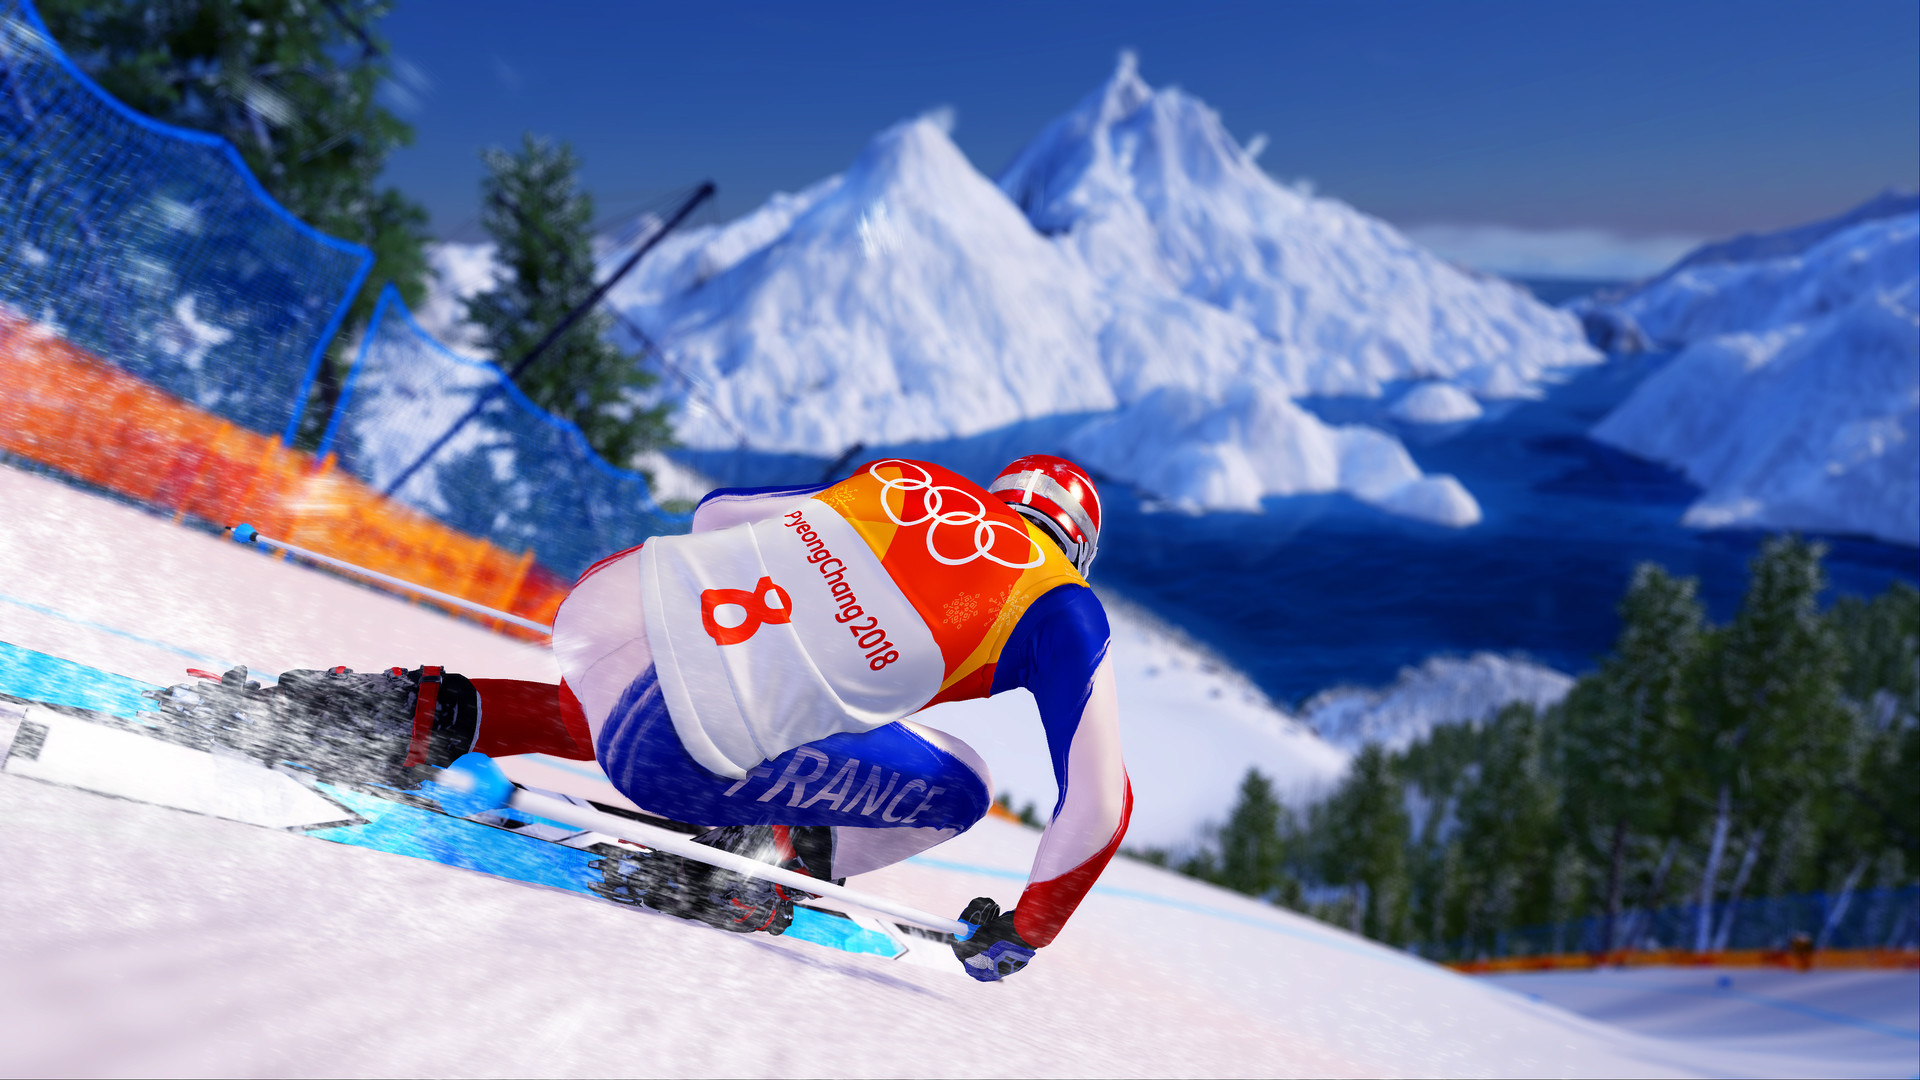 Steep Extreme Sport Game 4k Hd Desktop Wallpaper For 4k: Steep Road To The Olympics HD Wallpapers